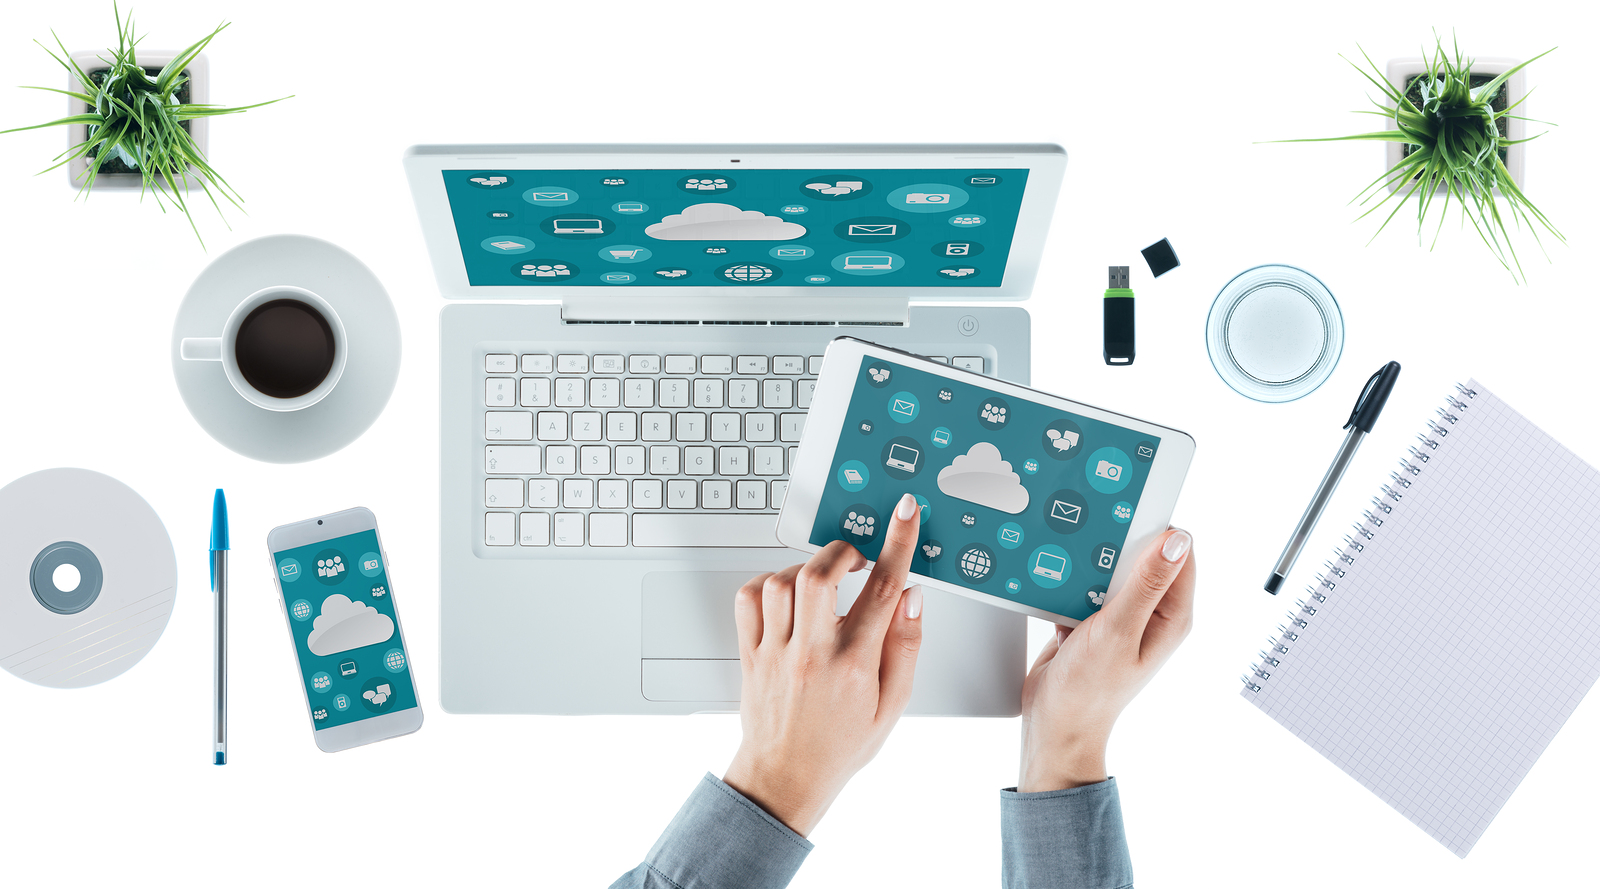 Cloud computing and multiplatform concept user interface on laptop tablet and smartphone female hands touching an icon